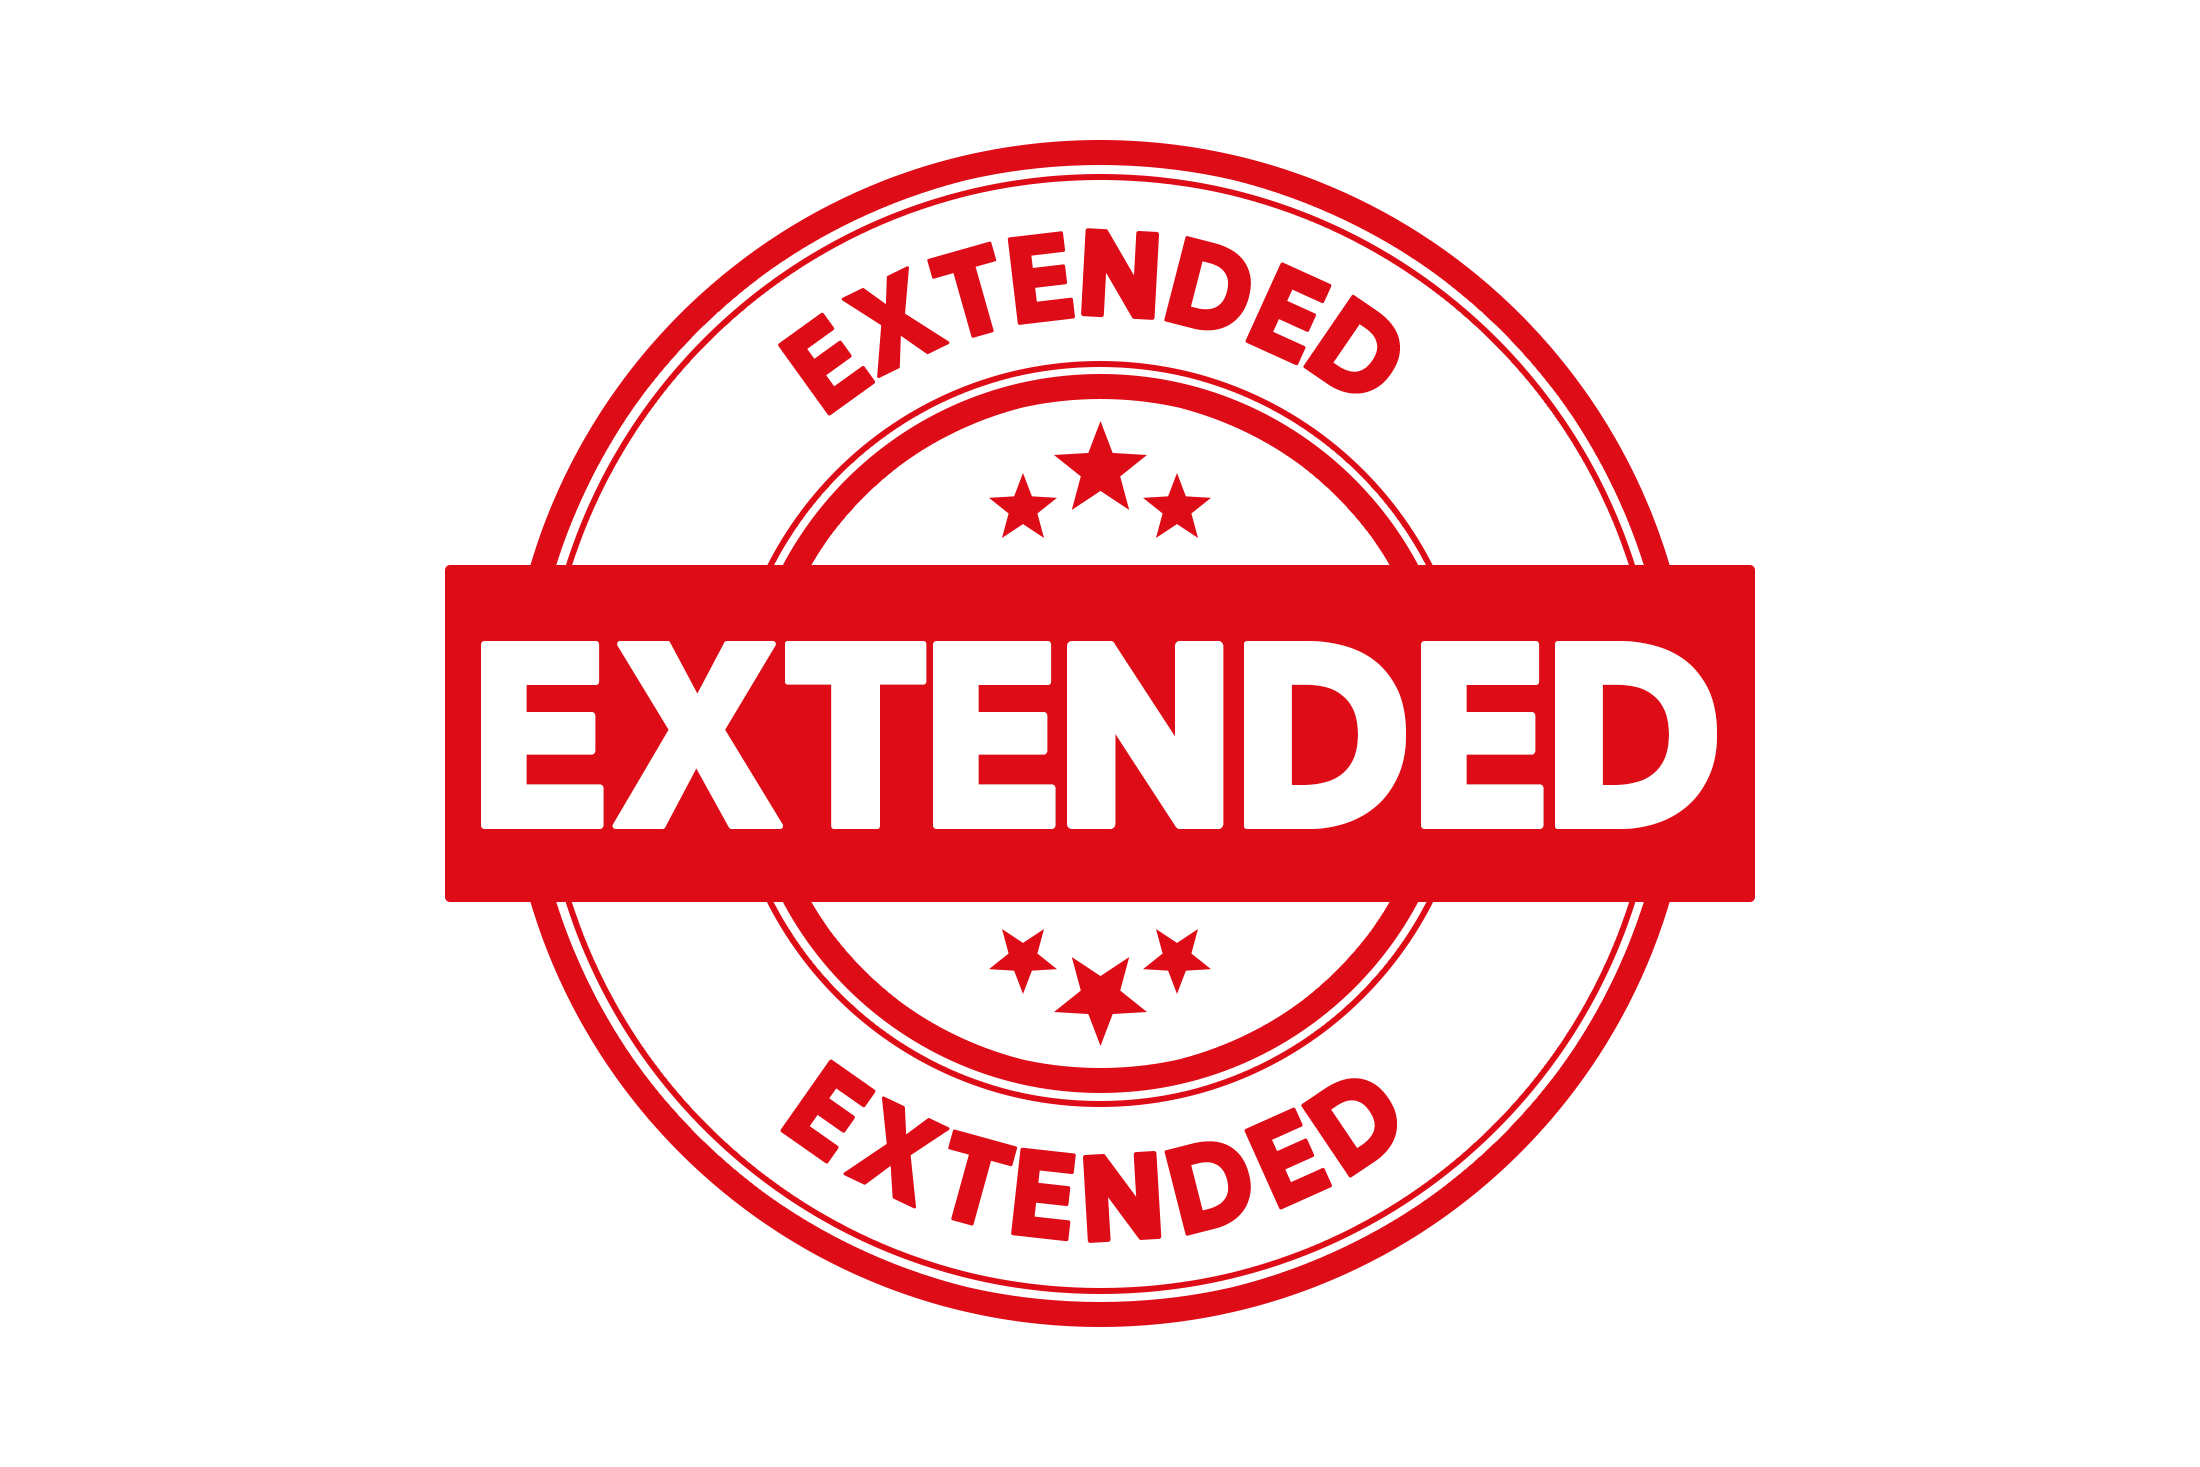 Round extended stamp PSD